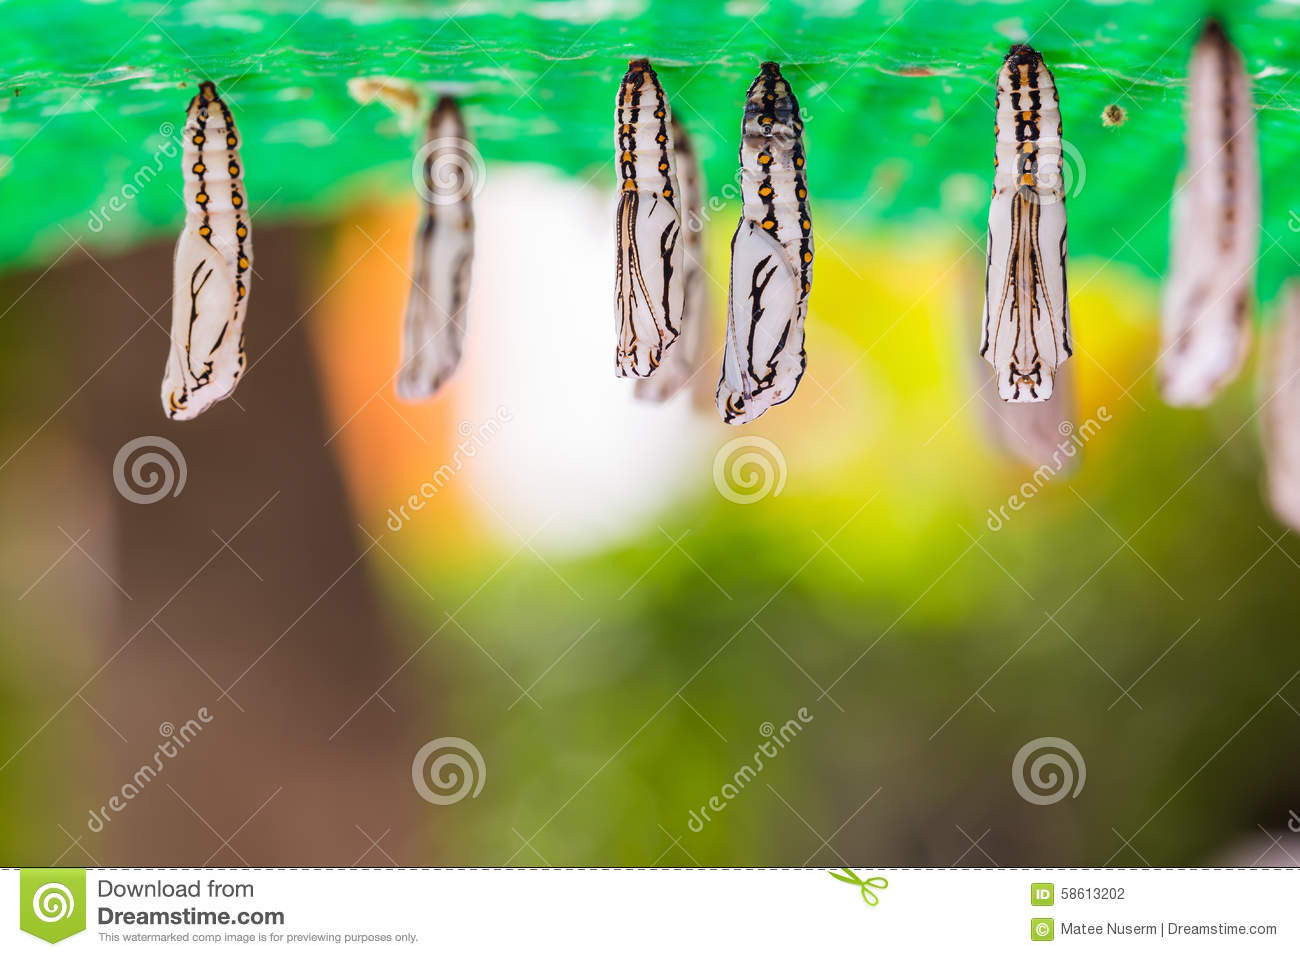 Tawny coster pupae